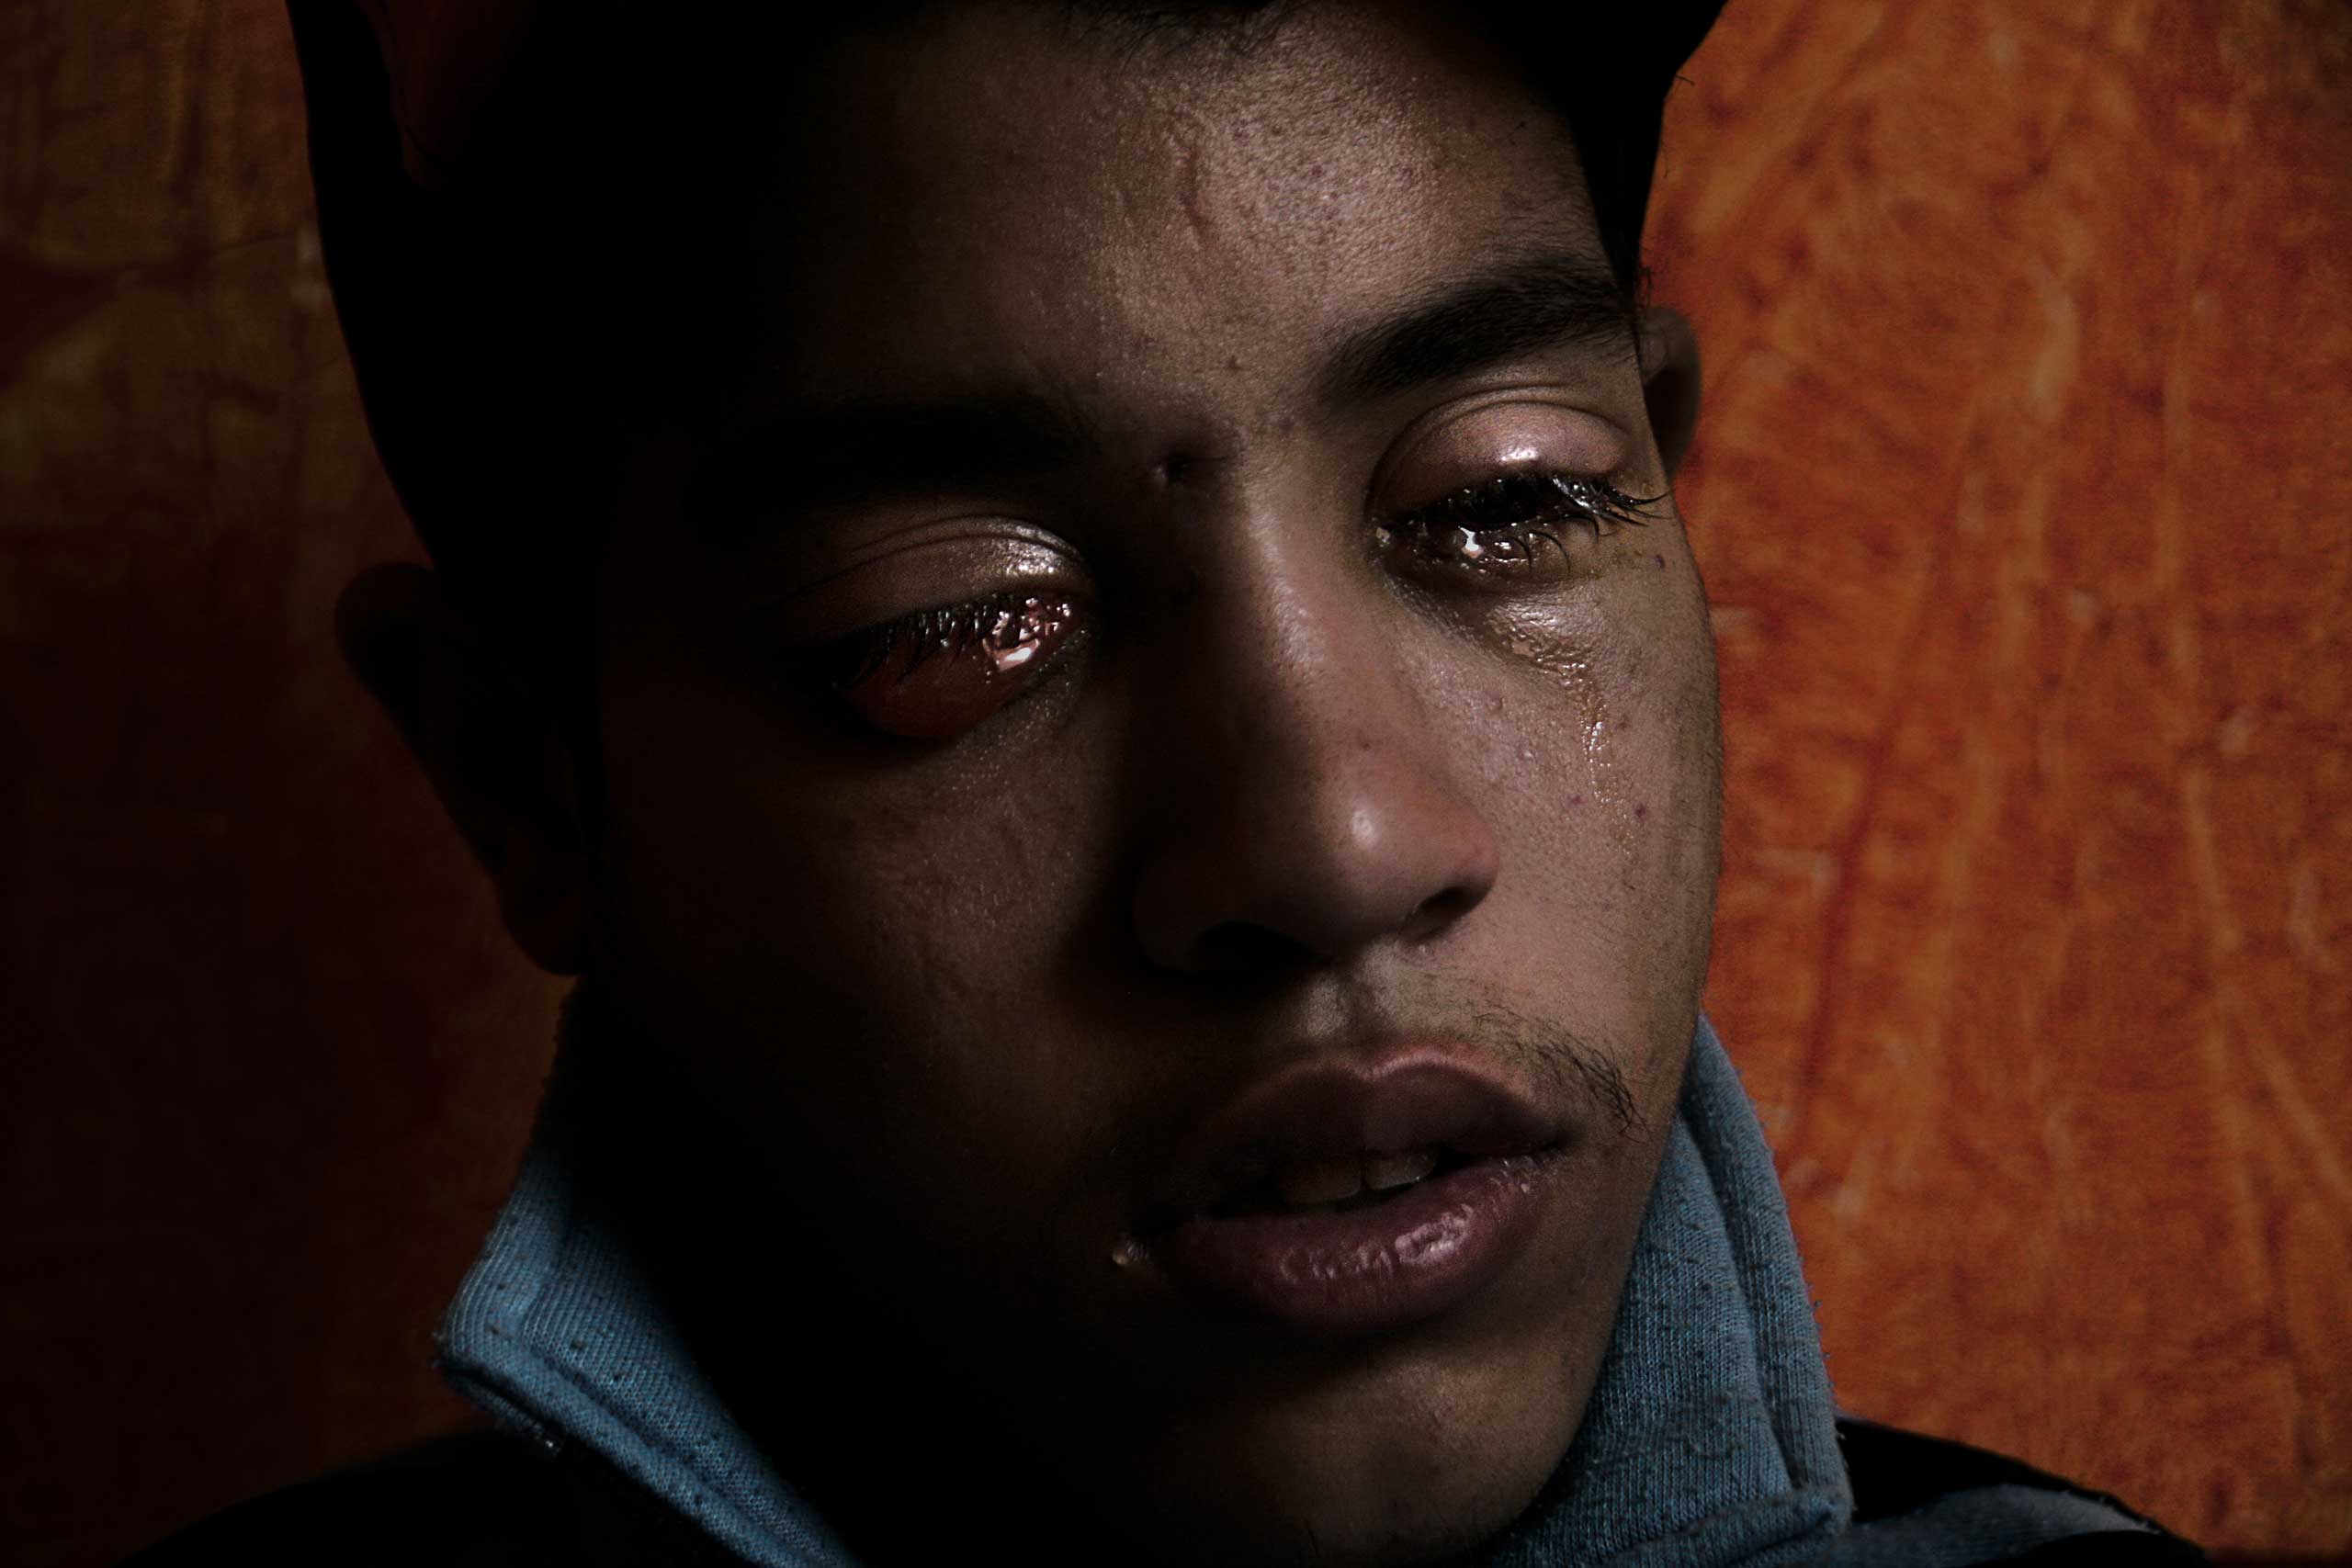 Reda Abdelaziz Mohamed was 19 in this Dec. 8, 2011 photograph. Reda (an Arabic word meaning contentment) was not crying - his left eye constantly wept, his right left blinded when a policeman fired rubber pellets into his eyes.He is one of hundreds, if not thousands, of people suffering the long-term consequences of fighting for dignity and justice in a country that currently doesn't seem to appreciate their sacrifice.